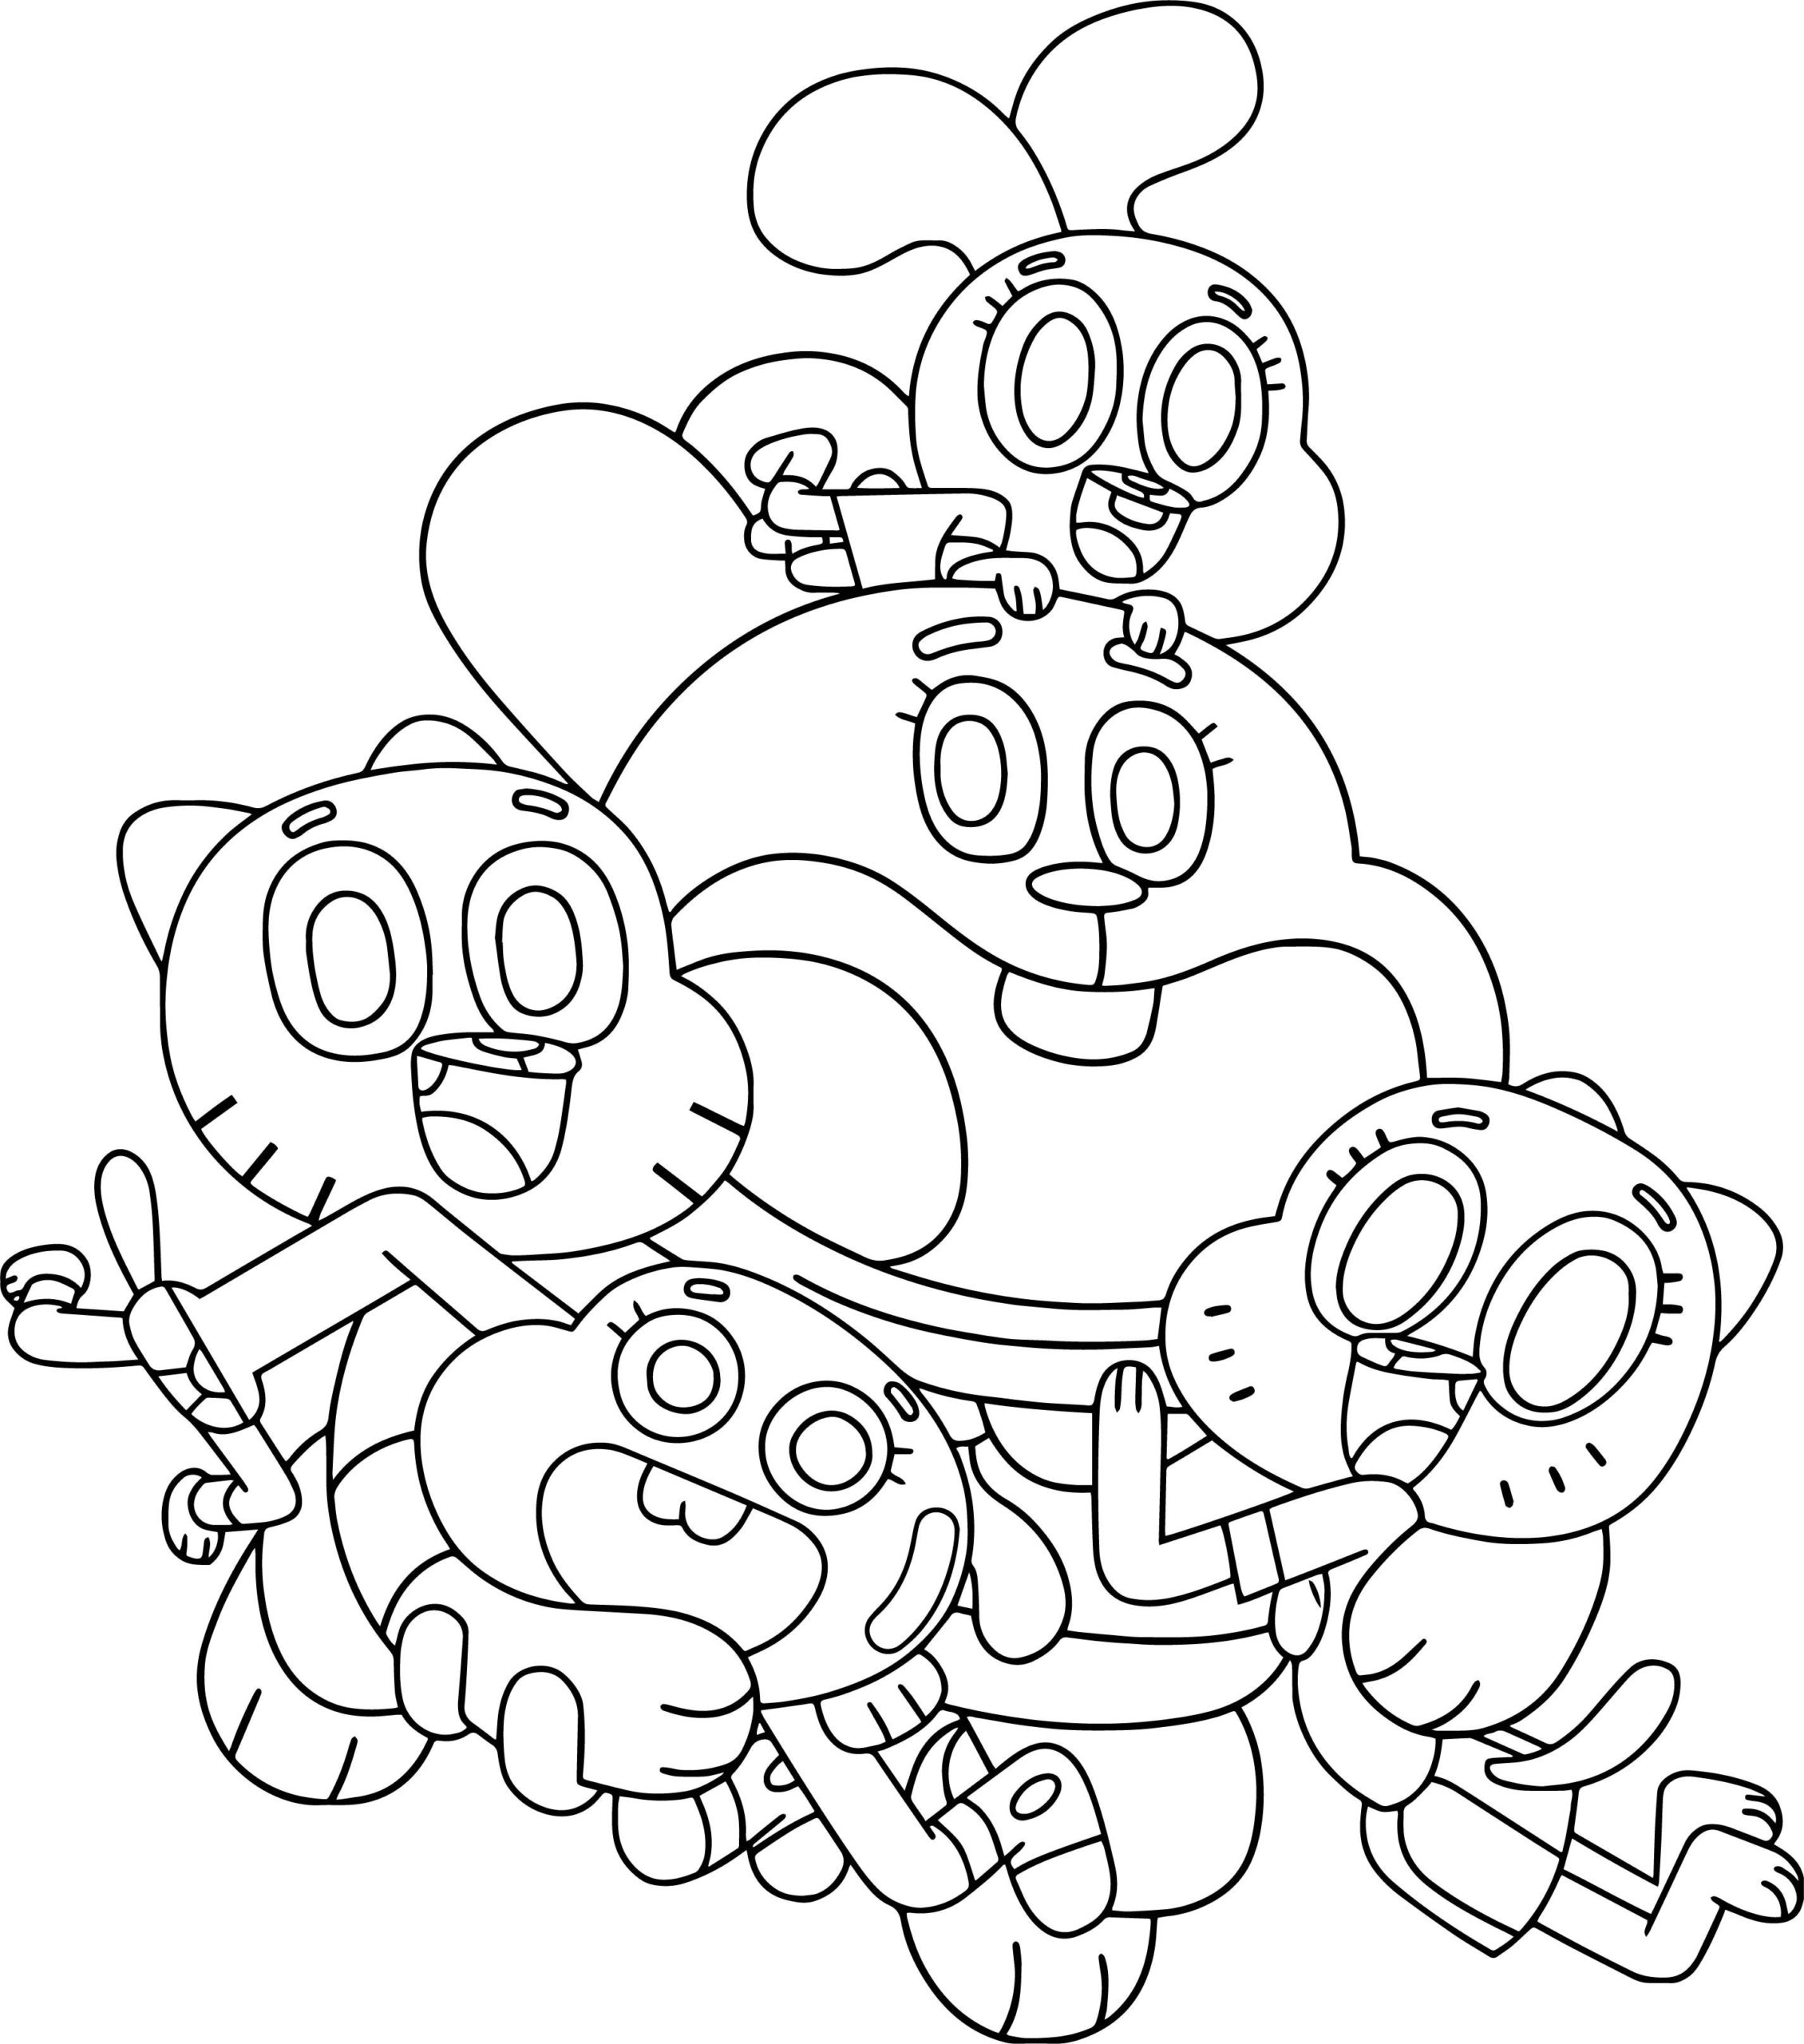 Cartoon Network Coloring Pages - Coloring Home